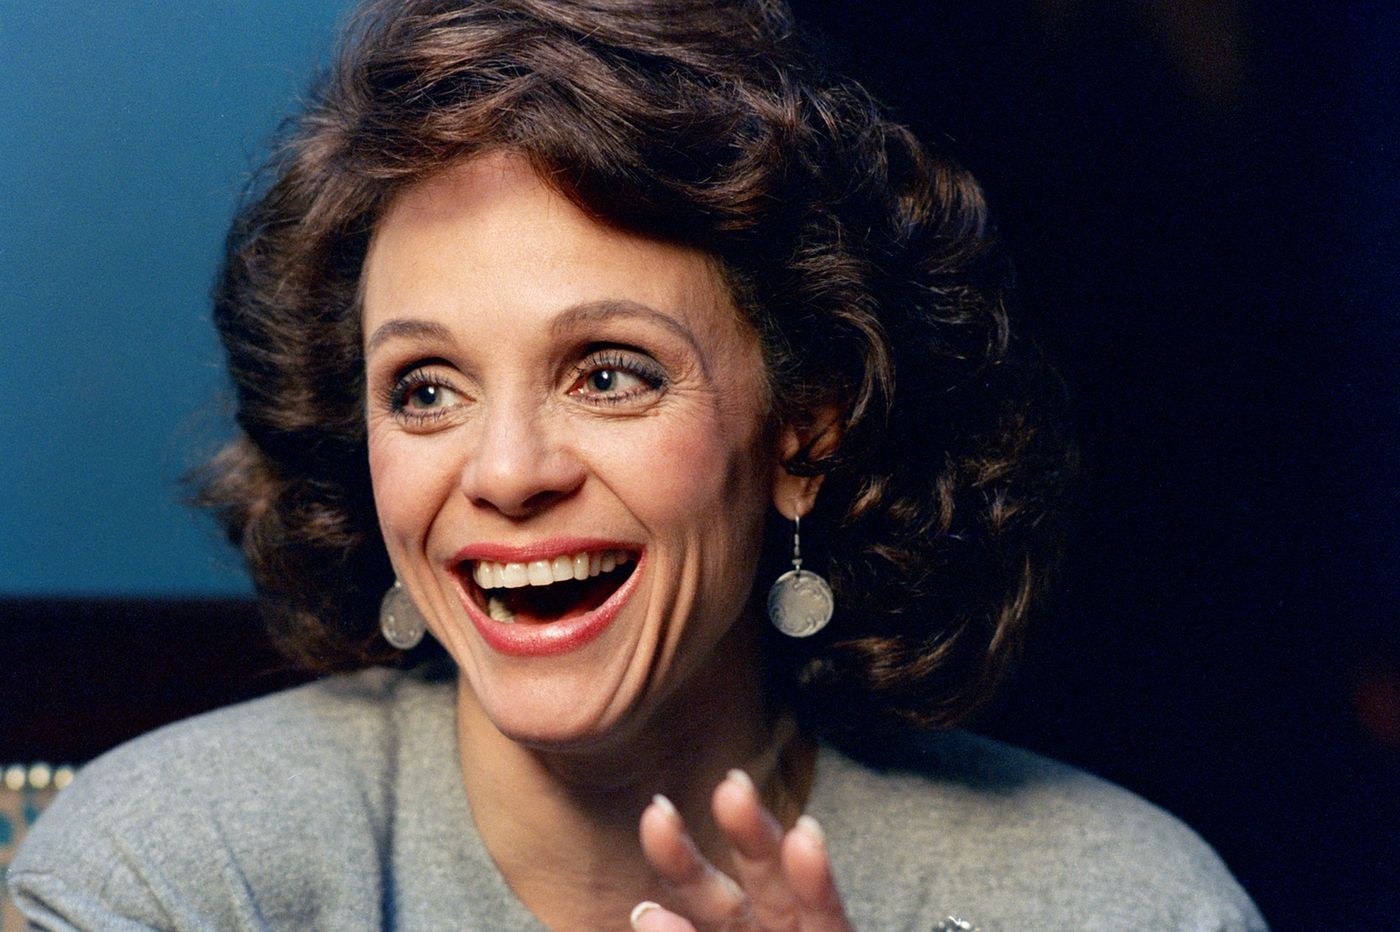 Valerie Harper, TV's Rhoda, has died at 80